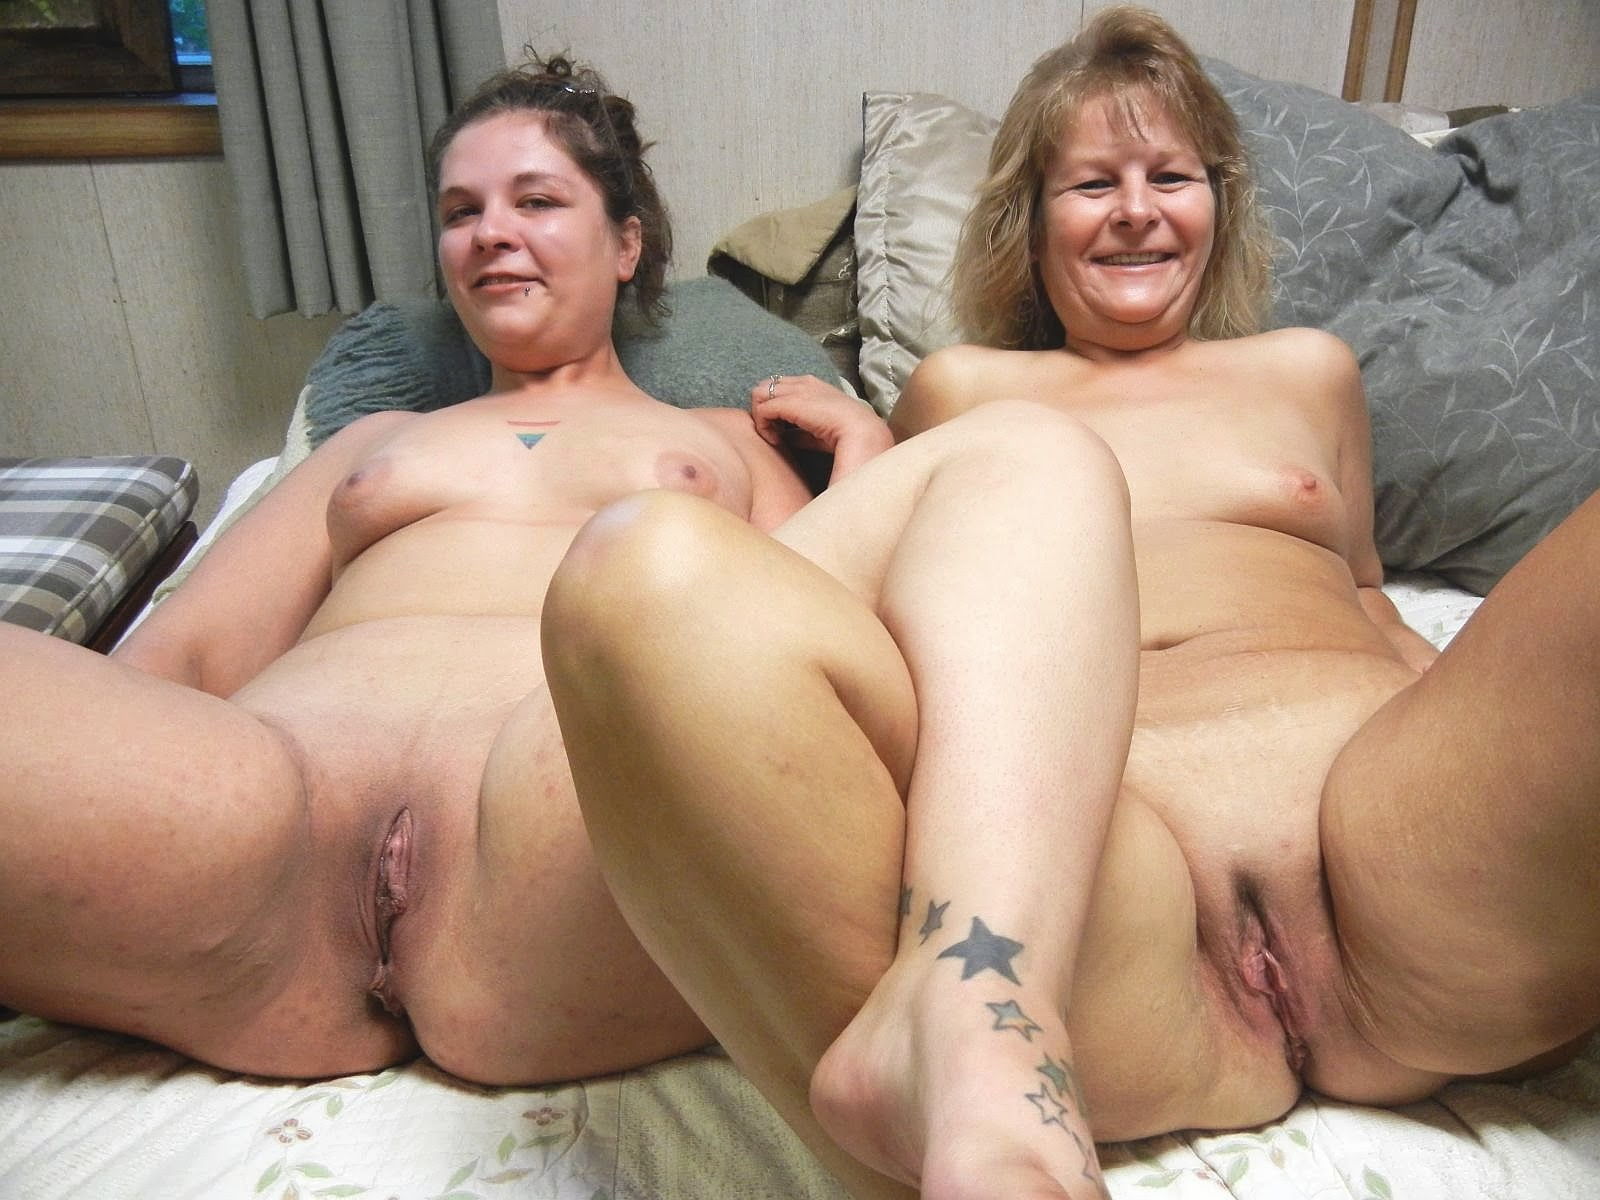 mother and daughter pussy pic